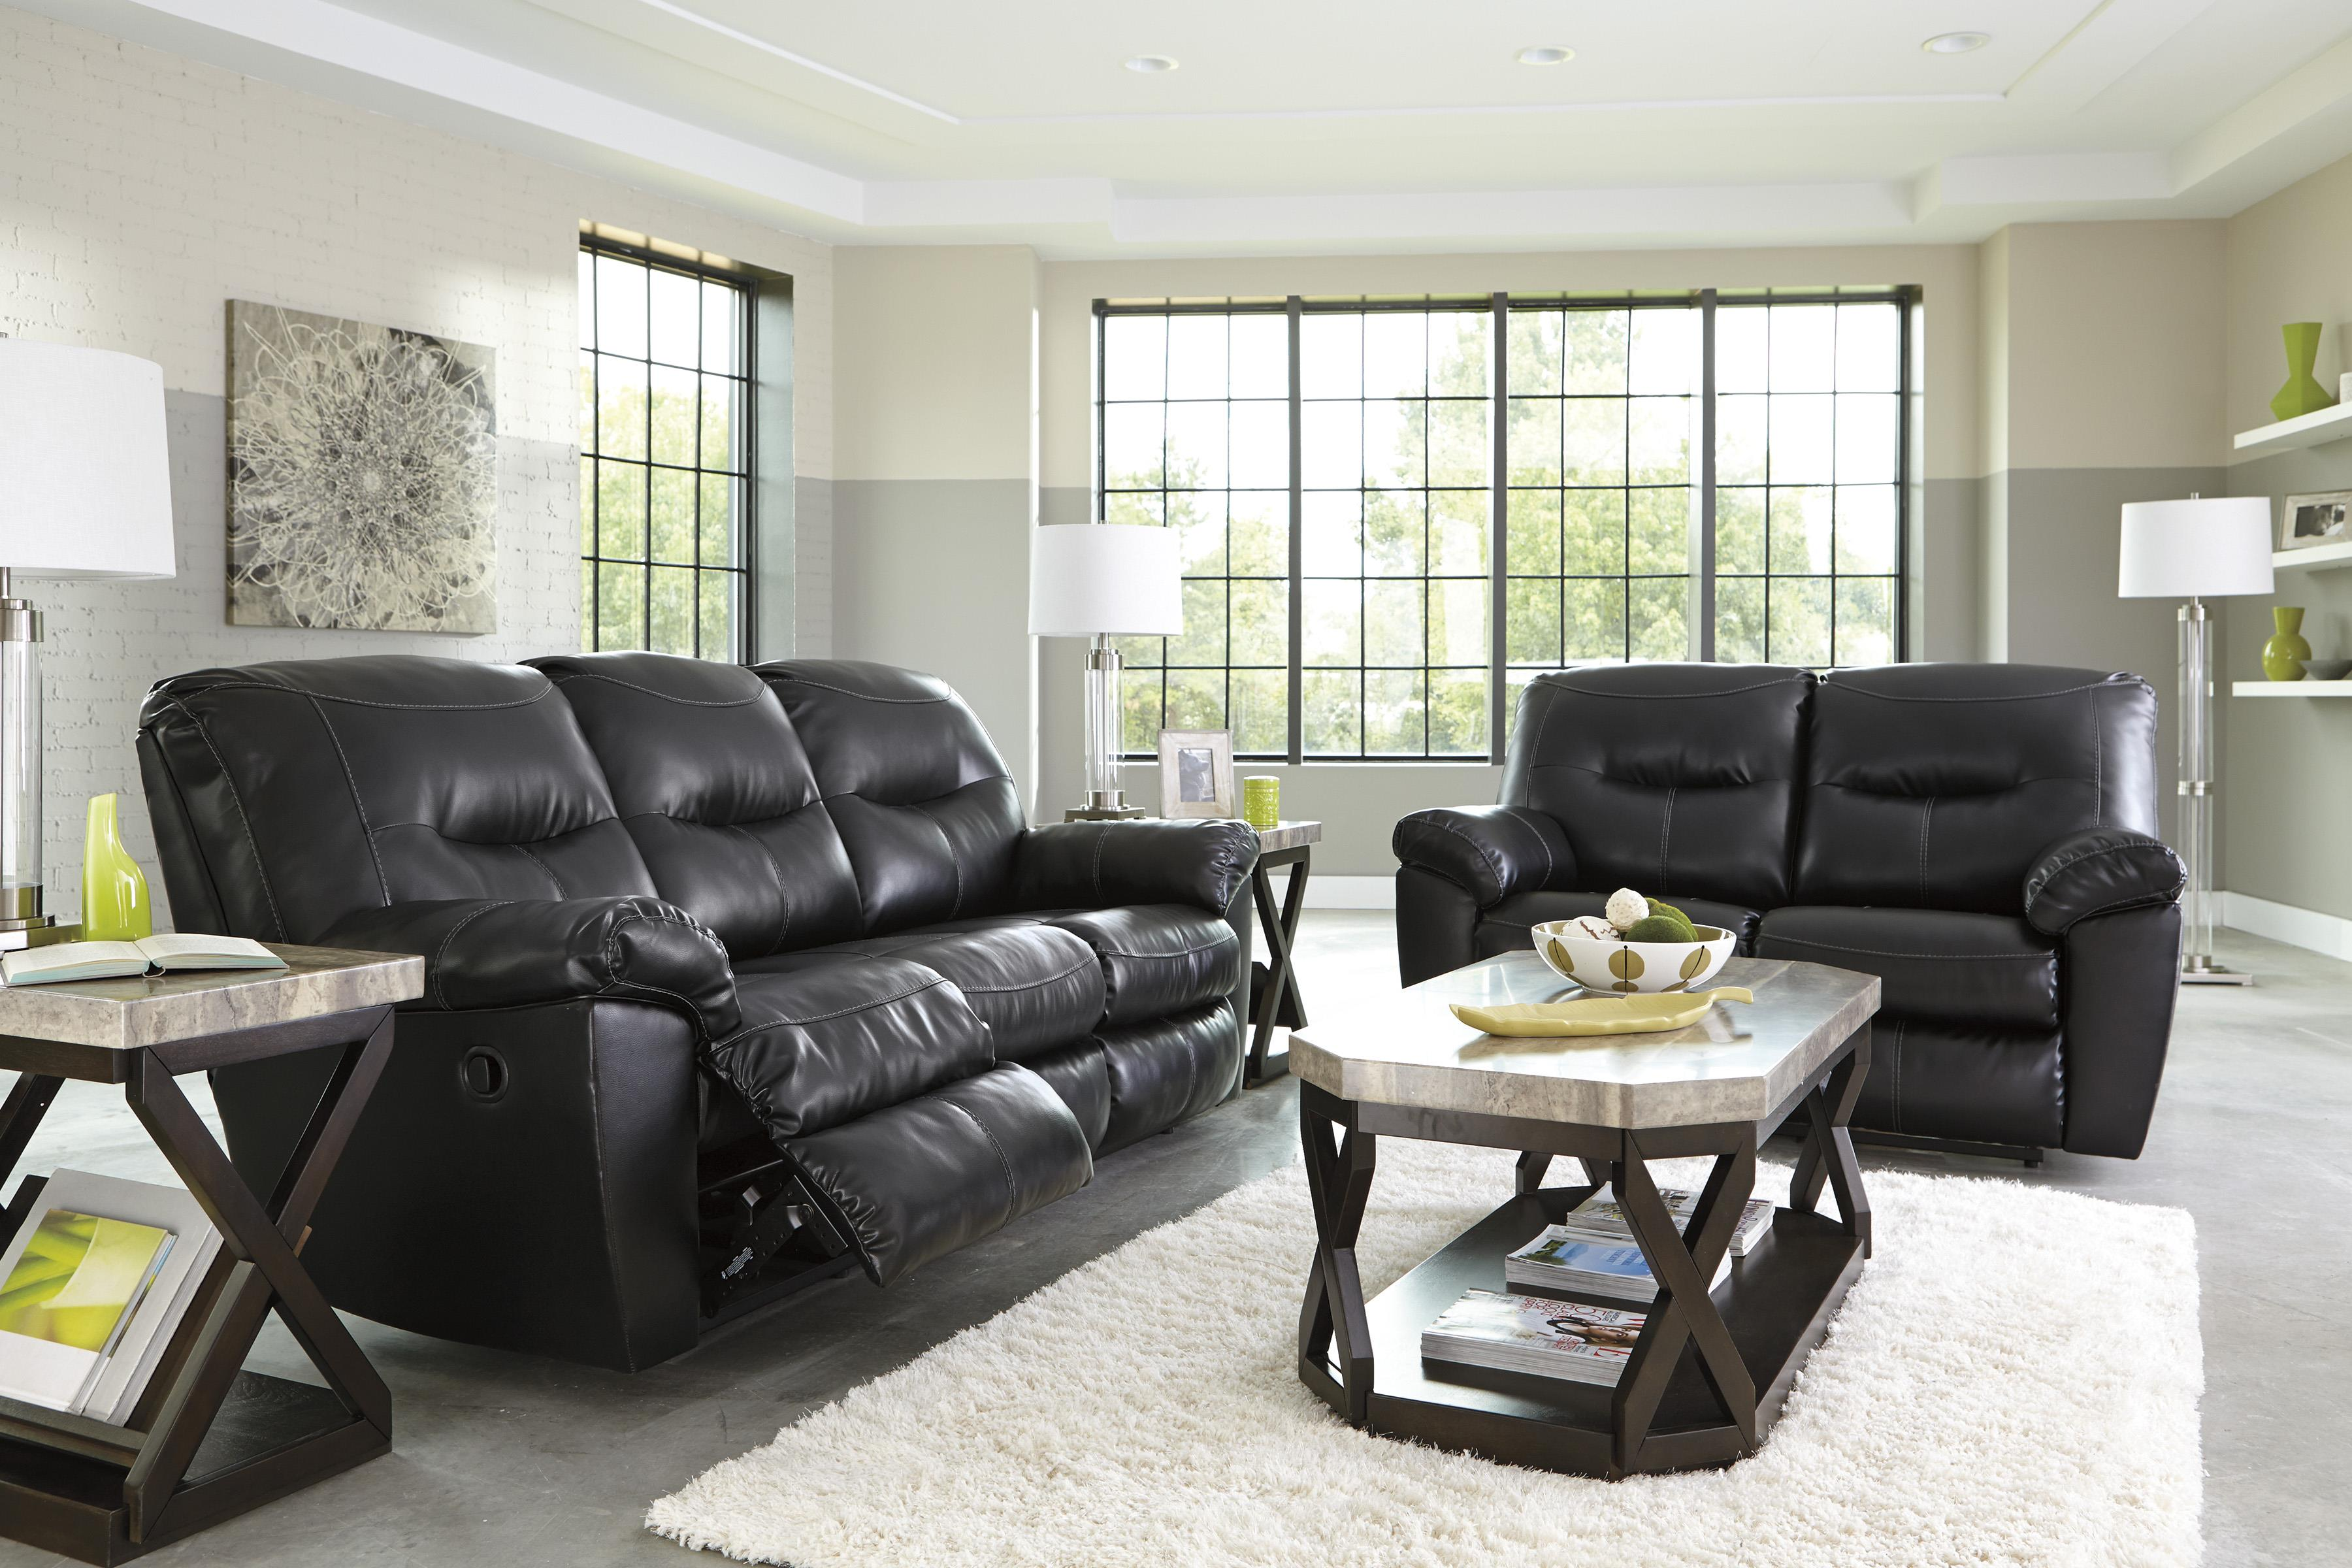 Signature Design by Ashley Kilzer DuraBlend® Reclining Living Room Group - Item Number: 84701 Living Room Group 1